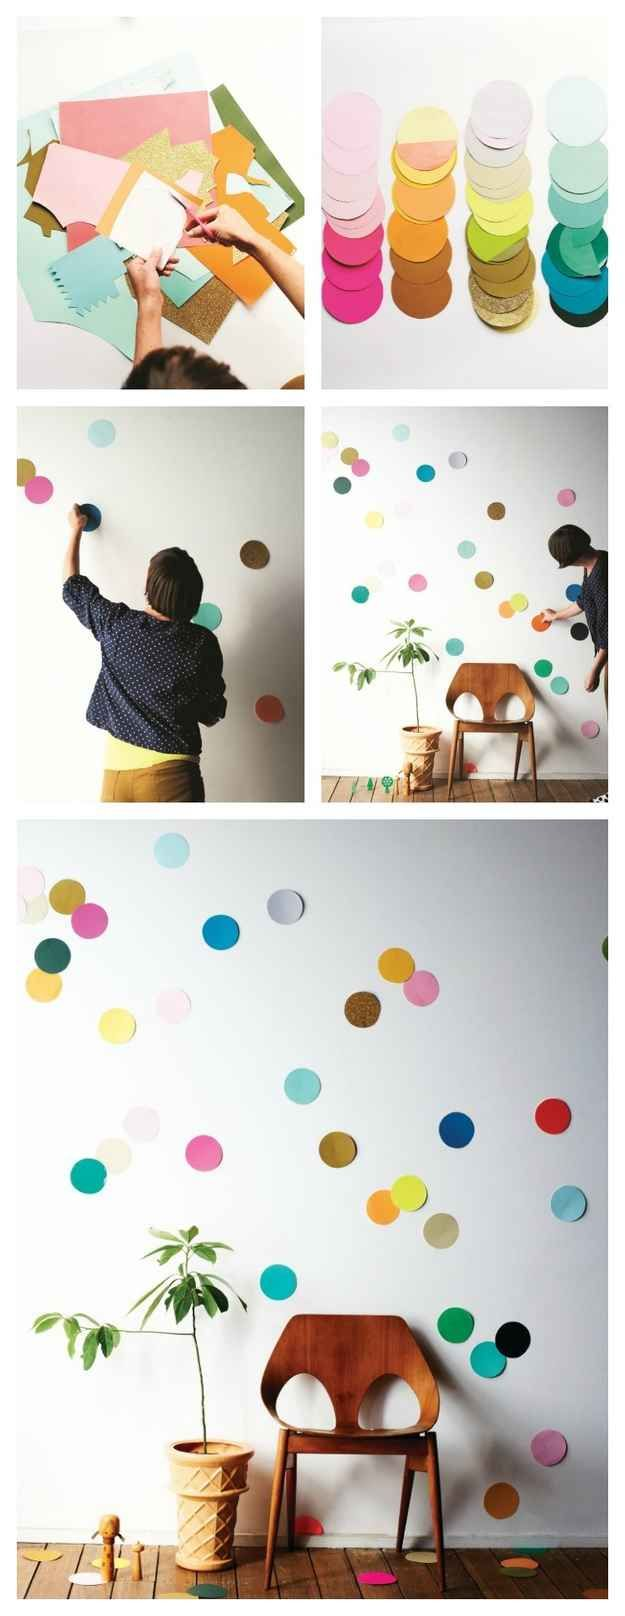 Wall | 26 Cute And Novel Ways To Use Confetti